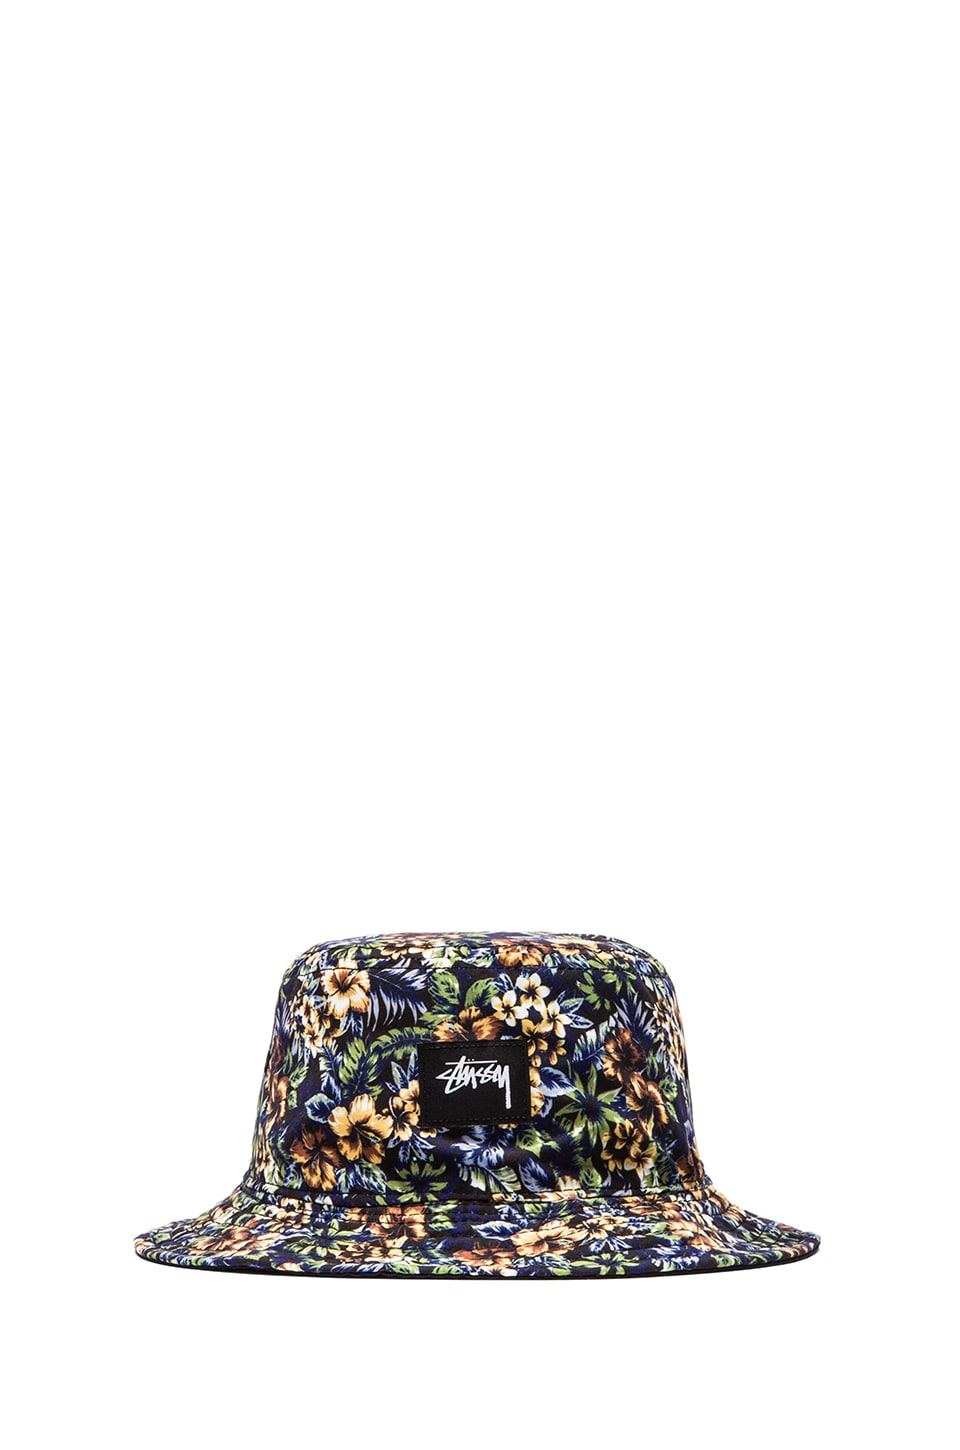 Stussy Island Reversible Bucket Hat in Black